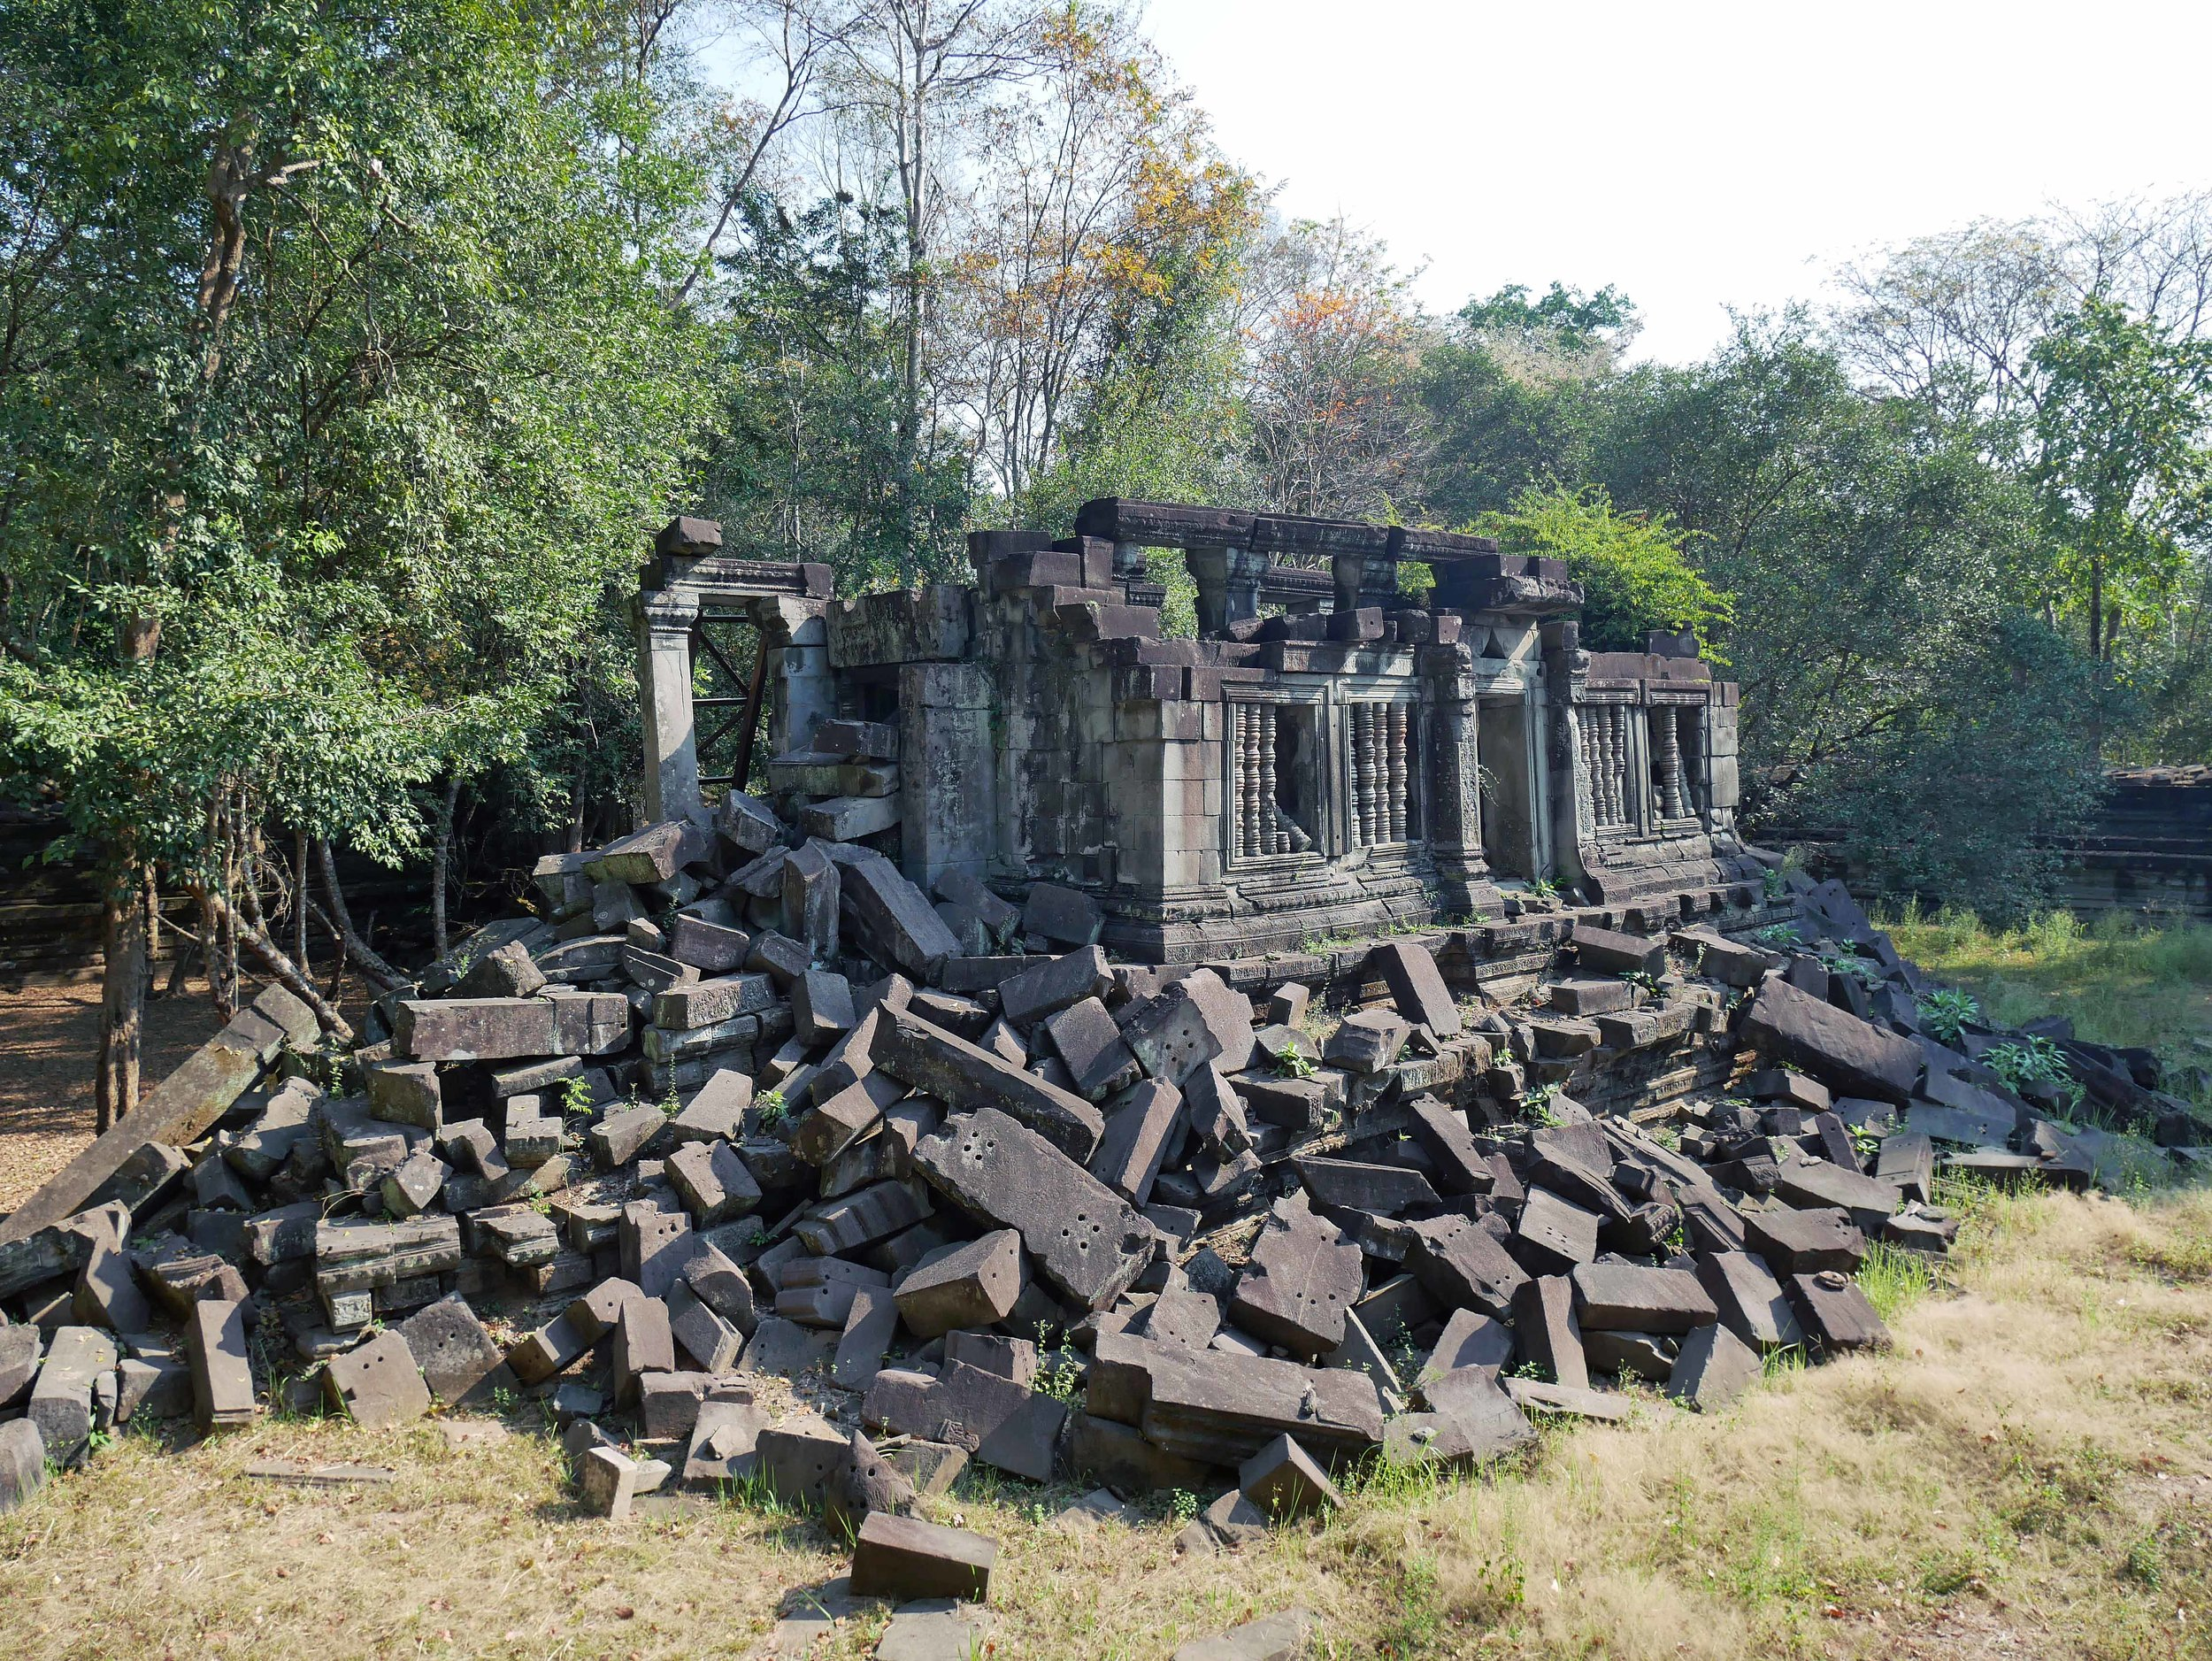 """Beng Mealea, which means """"lotus pond"""" in Khmer, is an 1.5-hour drive from the main temples of Siem Reap... or even longer if you chose to visit via tuk-tuk (March 1)."""